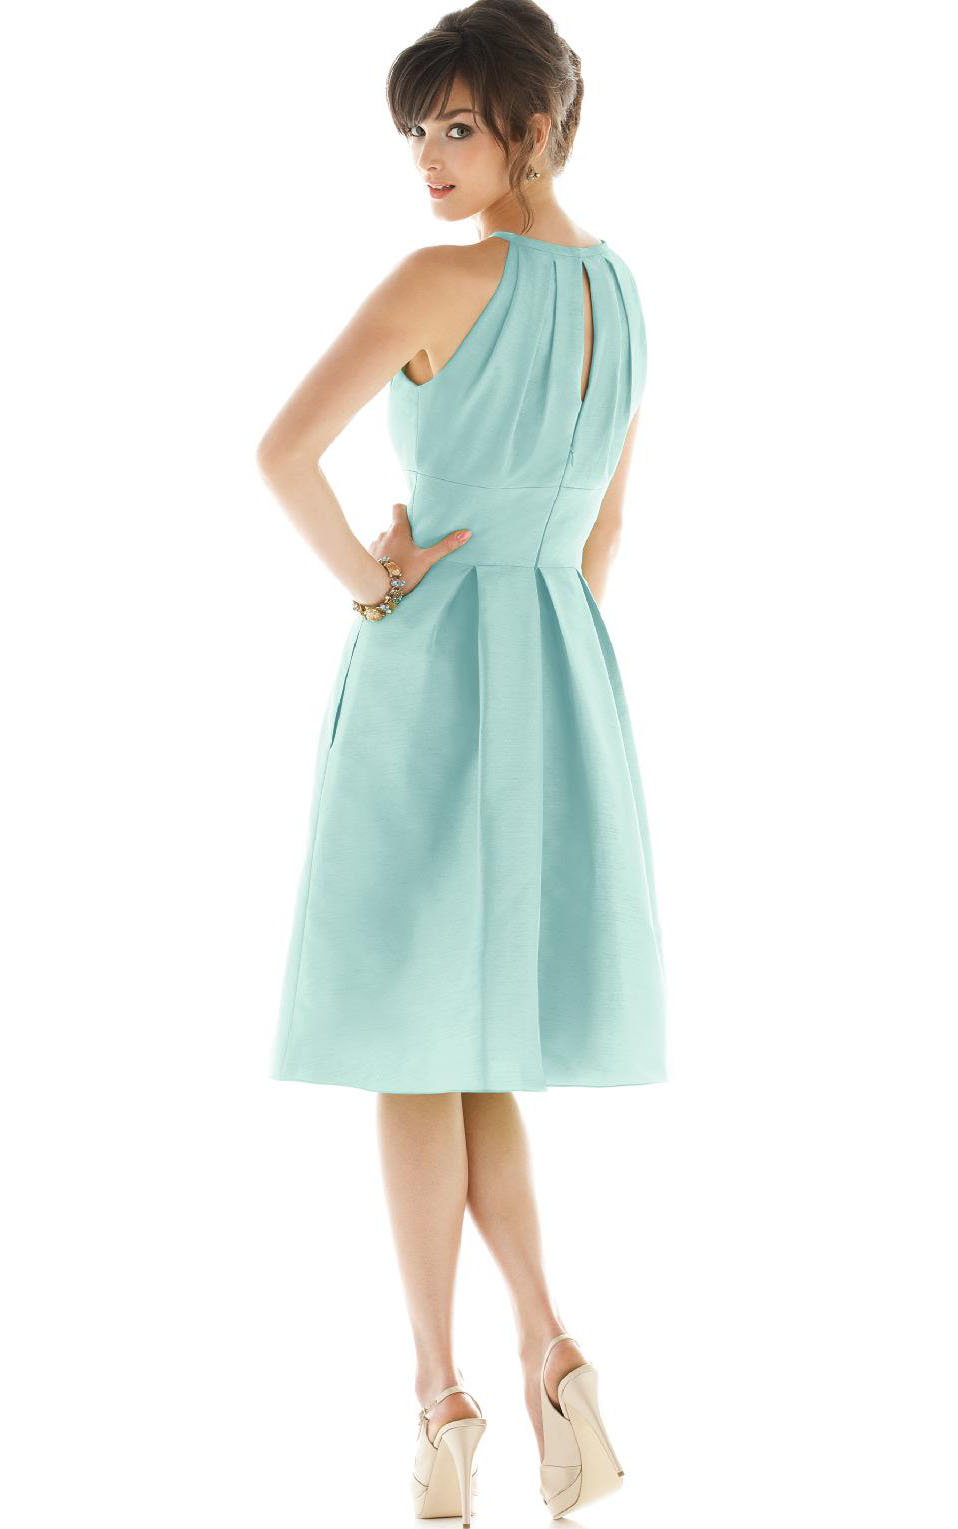 http://www.aislestyle.co.uk/jewel-sleeveless-zipper-aline-natural-bridesmaid-dresses-p-5271.html